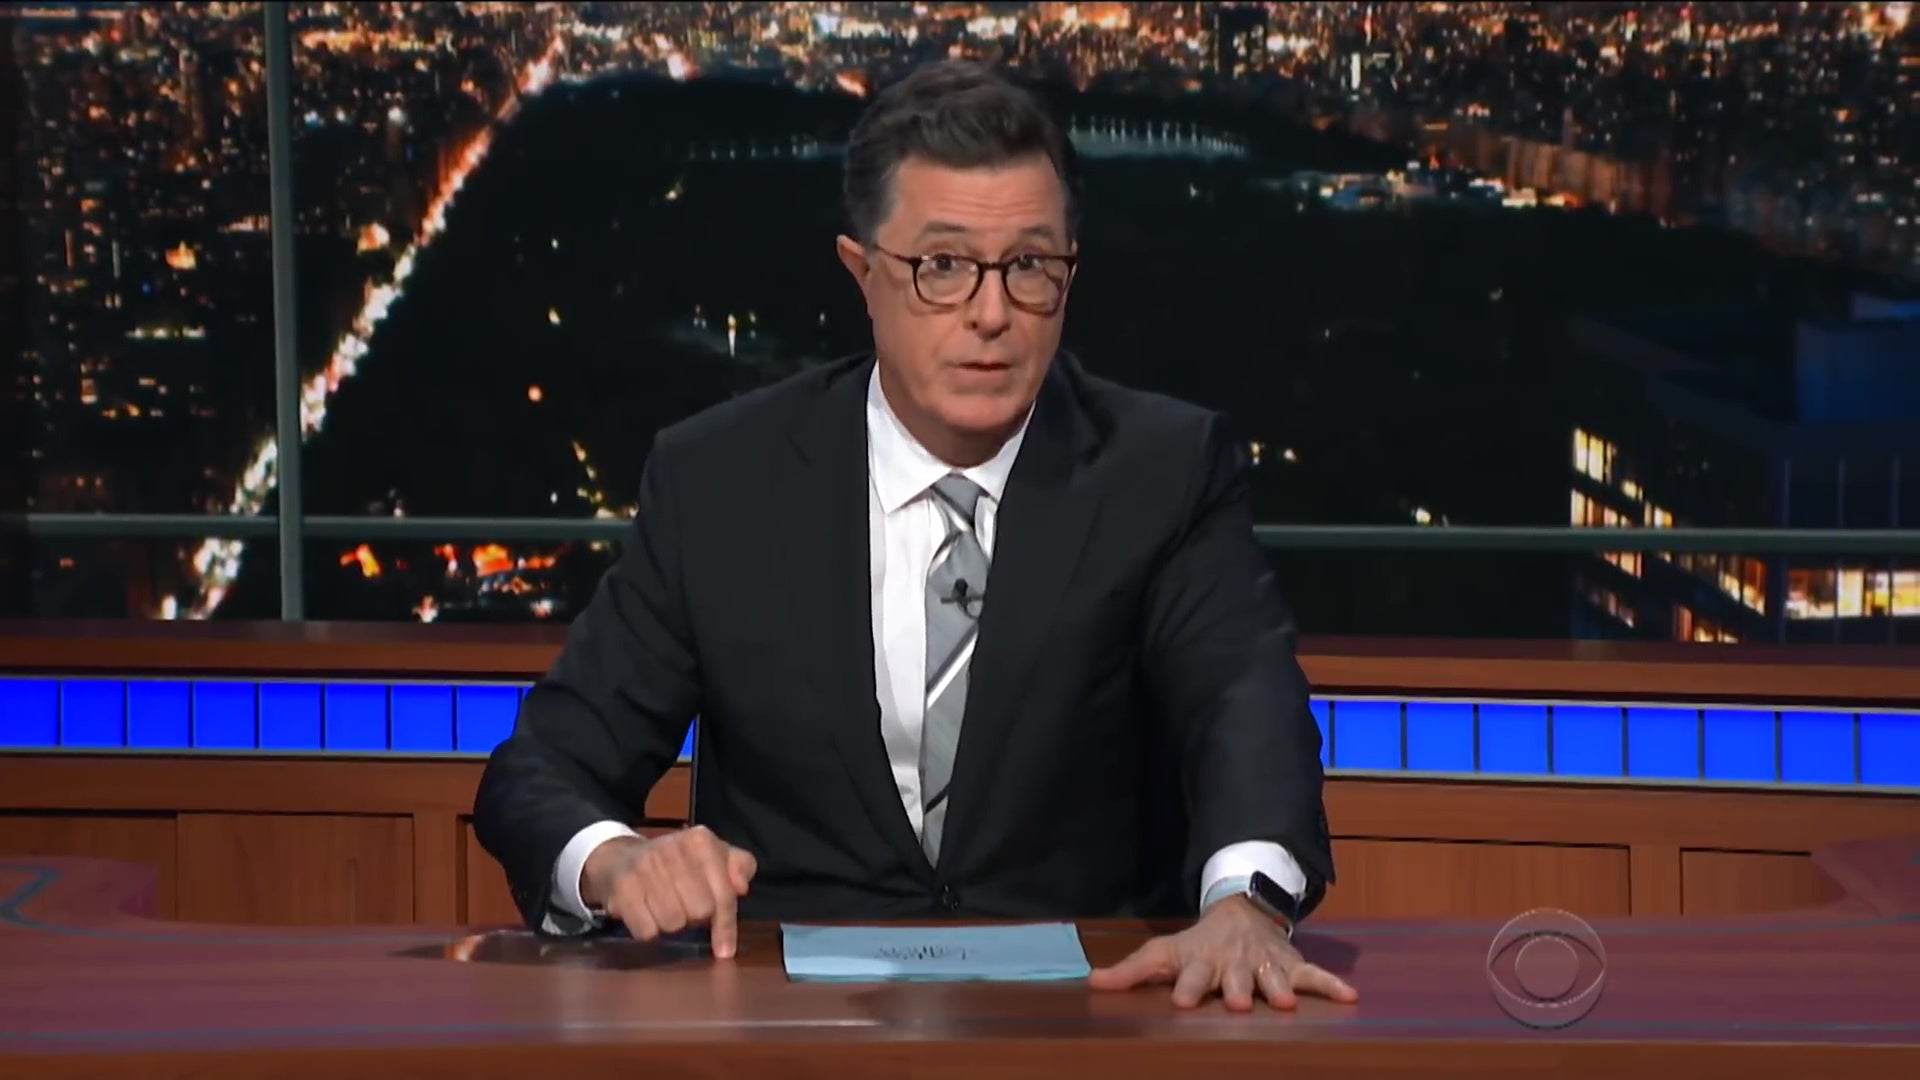 Stephen Colbert sitting behind a desk.